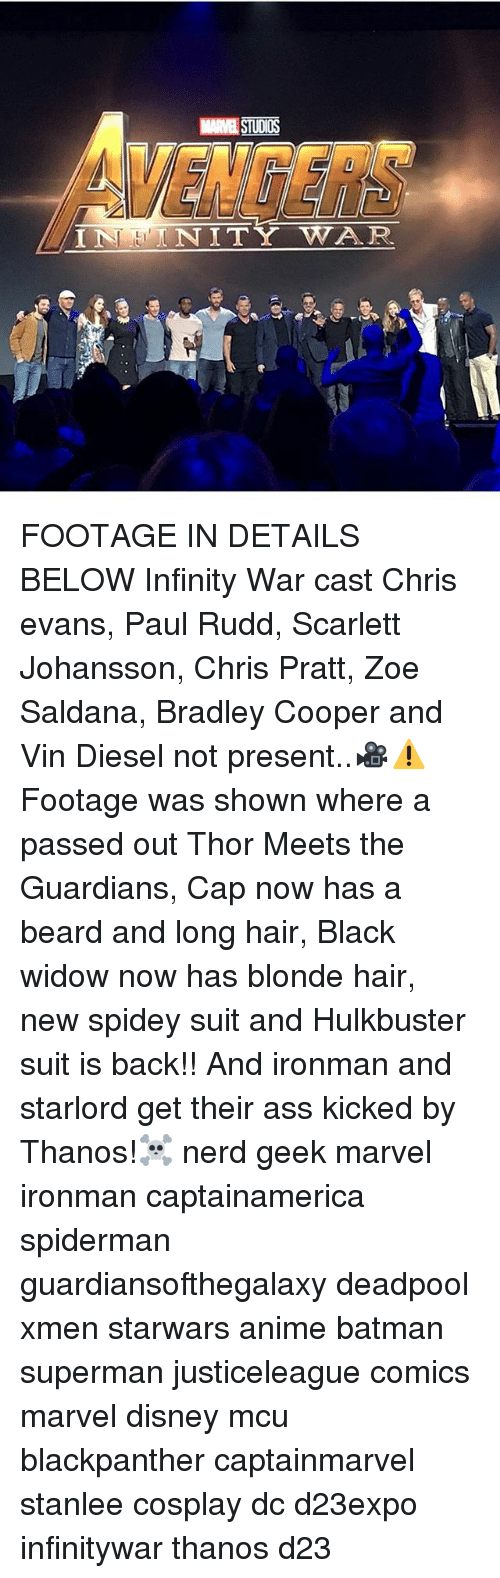 Bradley Cooper: MARVEL STUDIOS  VENGERS  NITY WAR FOOTAGE IN DETAILS BELOW Infinity War cast Chris evans, Paul Rudd, Scarlett Johansson, Chris Pratt, Zoe Saldana, Bradley Cooper and Vin Diesel not present..🎥⚠Footage was shown where a passed out Thor Meets the Guardians, Cap now has a beard and long hair, Black widow now has blonde hair, new spidey suit and Hulkbuster suit is back!! And ironman and starlord get their ass kicked by Thanos!☠ nerd geek marvel ironman captainamerica spiderman guardiansofthegalaxy deadpool xmen starwars anime batman superman justiceleague comics marvel disney mcu blackpanther captainmarvel stanlee cosplay dc d23expo infinitywar thanos d23